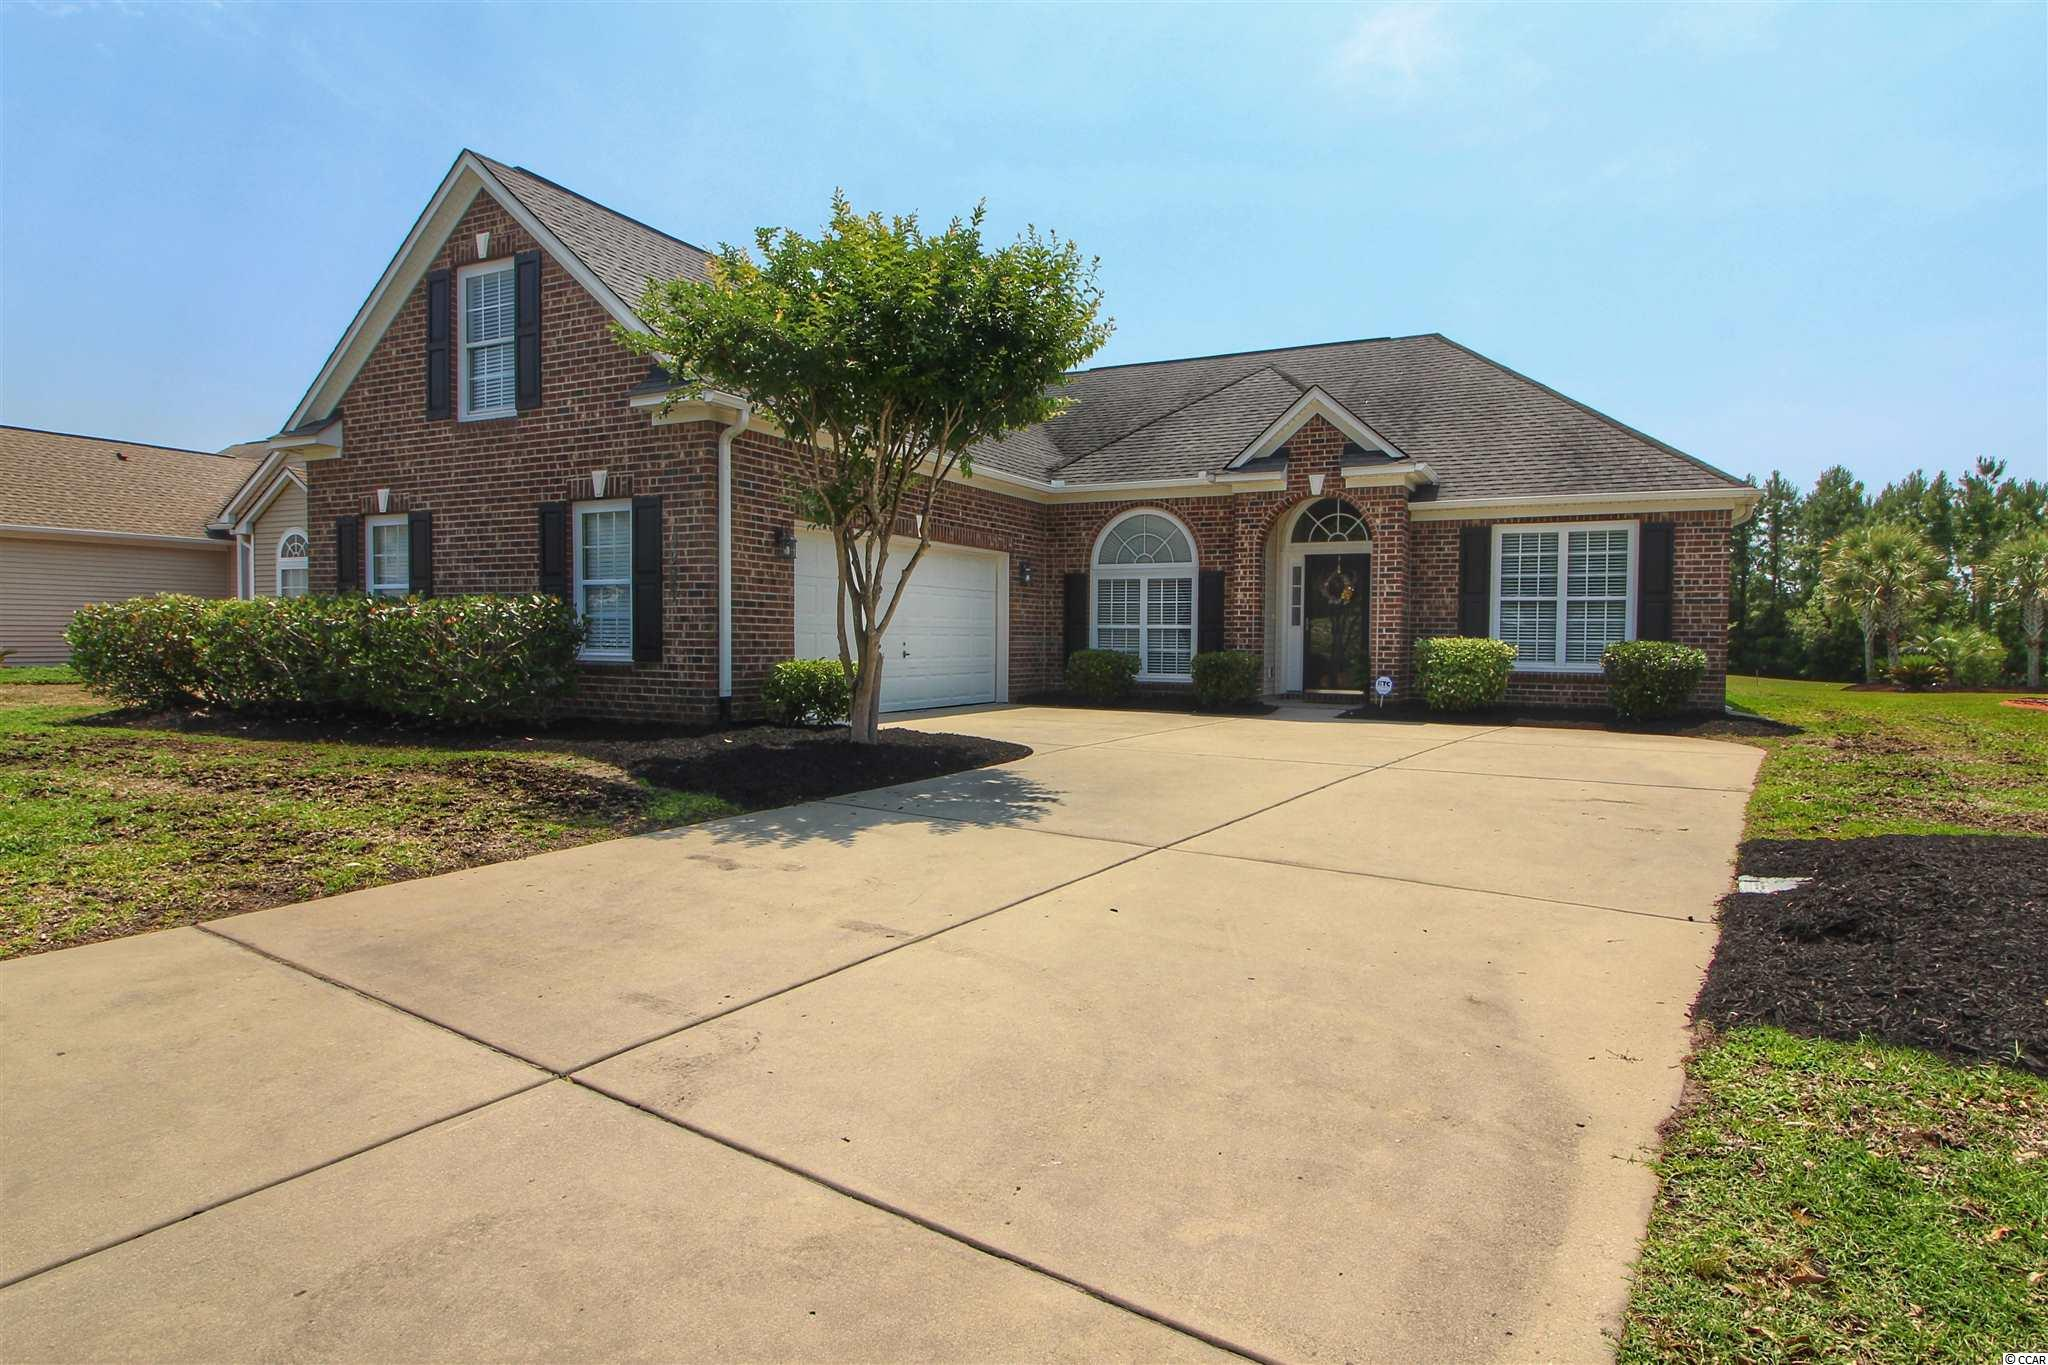 You will love this beautiful home located in the Brookstone subdivision in prestigious Barefoot Resort. The owners have recently done may upgrades to the home. All new laminate flooring in all living areas and downstairs bedrooms, Custom painted with popcorn ceilings removed, new Kitchen Aide appliances, all new lighting and door hardware. The HVAC system was replaced in 2019 and all duct work has recently been covered in form for better efficiency. The home offers 2170 heated square feet and 2591 square feet underroof with 4 bedrooms and 2 baths. The floor plan is an open one from the kitchen into the great room and into the large sunroom.  There is a patio just off of the sunroom for just relaxing or grilling. The lot is one of the biggest in Brookstone large enough to put in any size pool one would want. The HOA dues are very low when one considers what it covers. Basic Cable TV, wireless internet, Membership in the Barefoot Residence Club with Olympic Pool, Club house, fitness center, tennis, pickleball, and basketball courts. The HOA also covers membership in the brand new Beach Cabana now under contracting with private parking and owners access to the cabana. No other resort offers so much. Barefoot Resort is close to everything and major highways for easy access. This one will not last long. FURNITURE NEGOTIABLE.